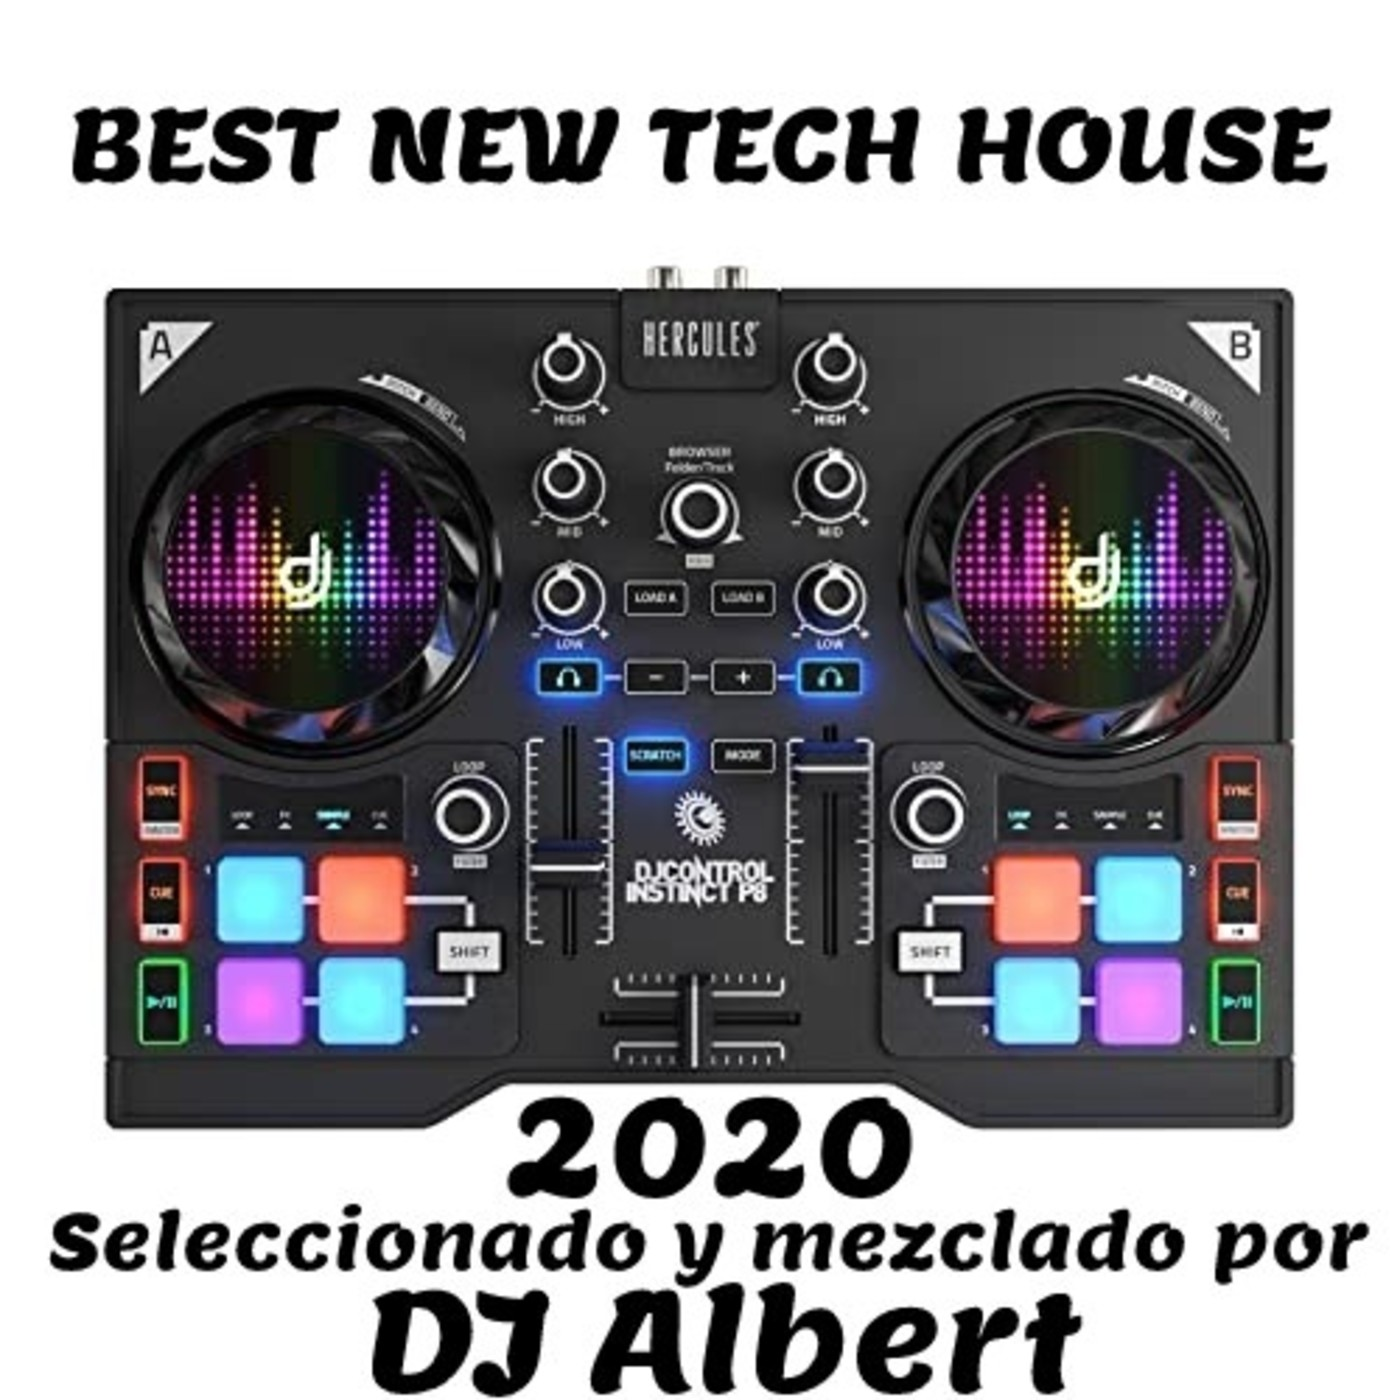 BEST NEW TECH HOUSE 2020 Seleccionado y mezclado por DJ Albert